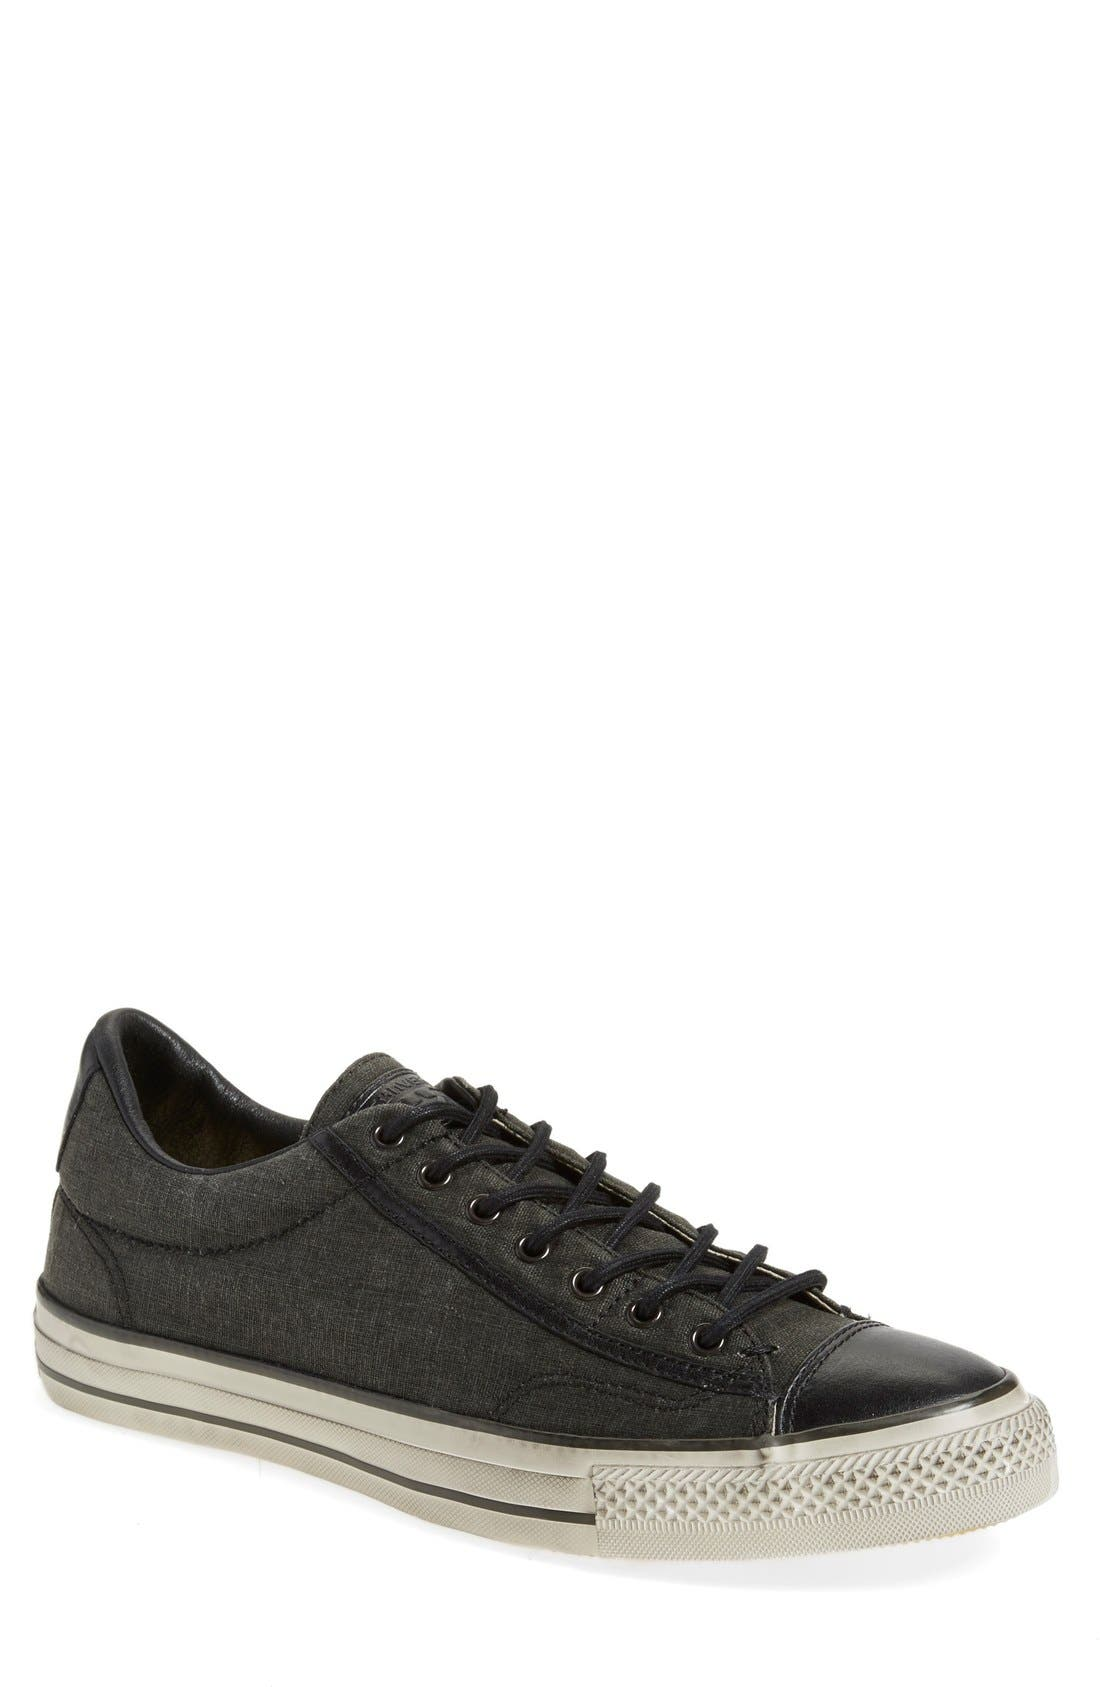 Converse by John Varvatos Chuck Taylor® All Star® Sneaker (Men)